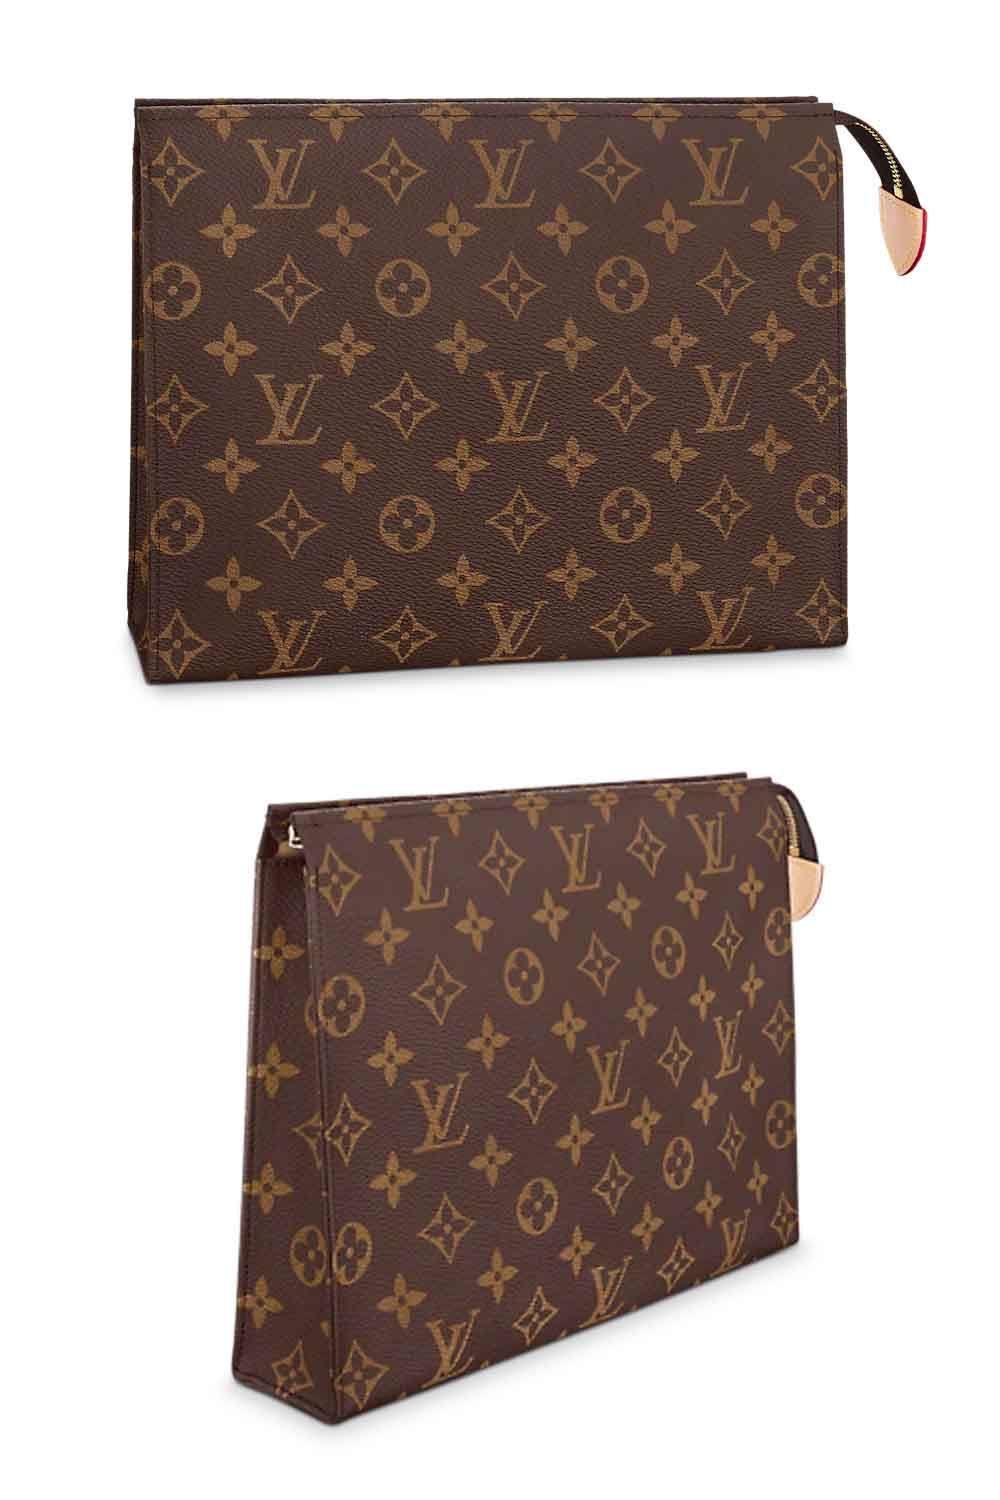 The-best-luxury-gifts-for-her-women-Louis-Vuitton-monogram-toiletry-pouch-26